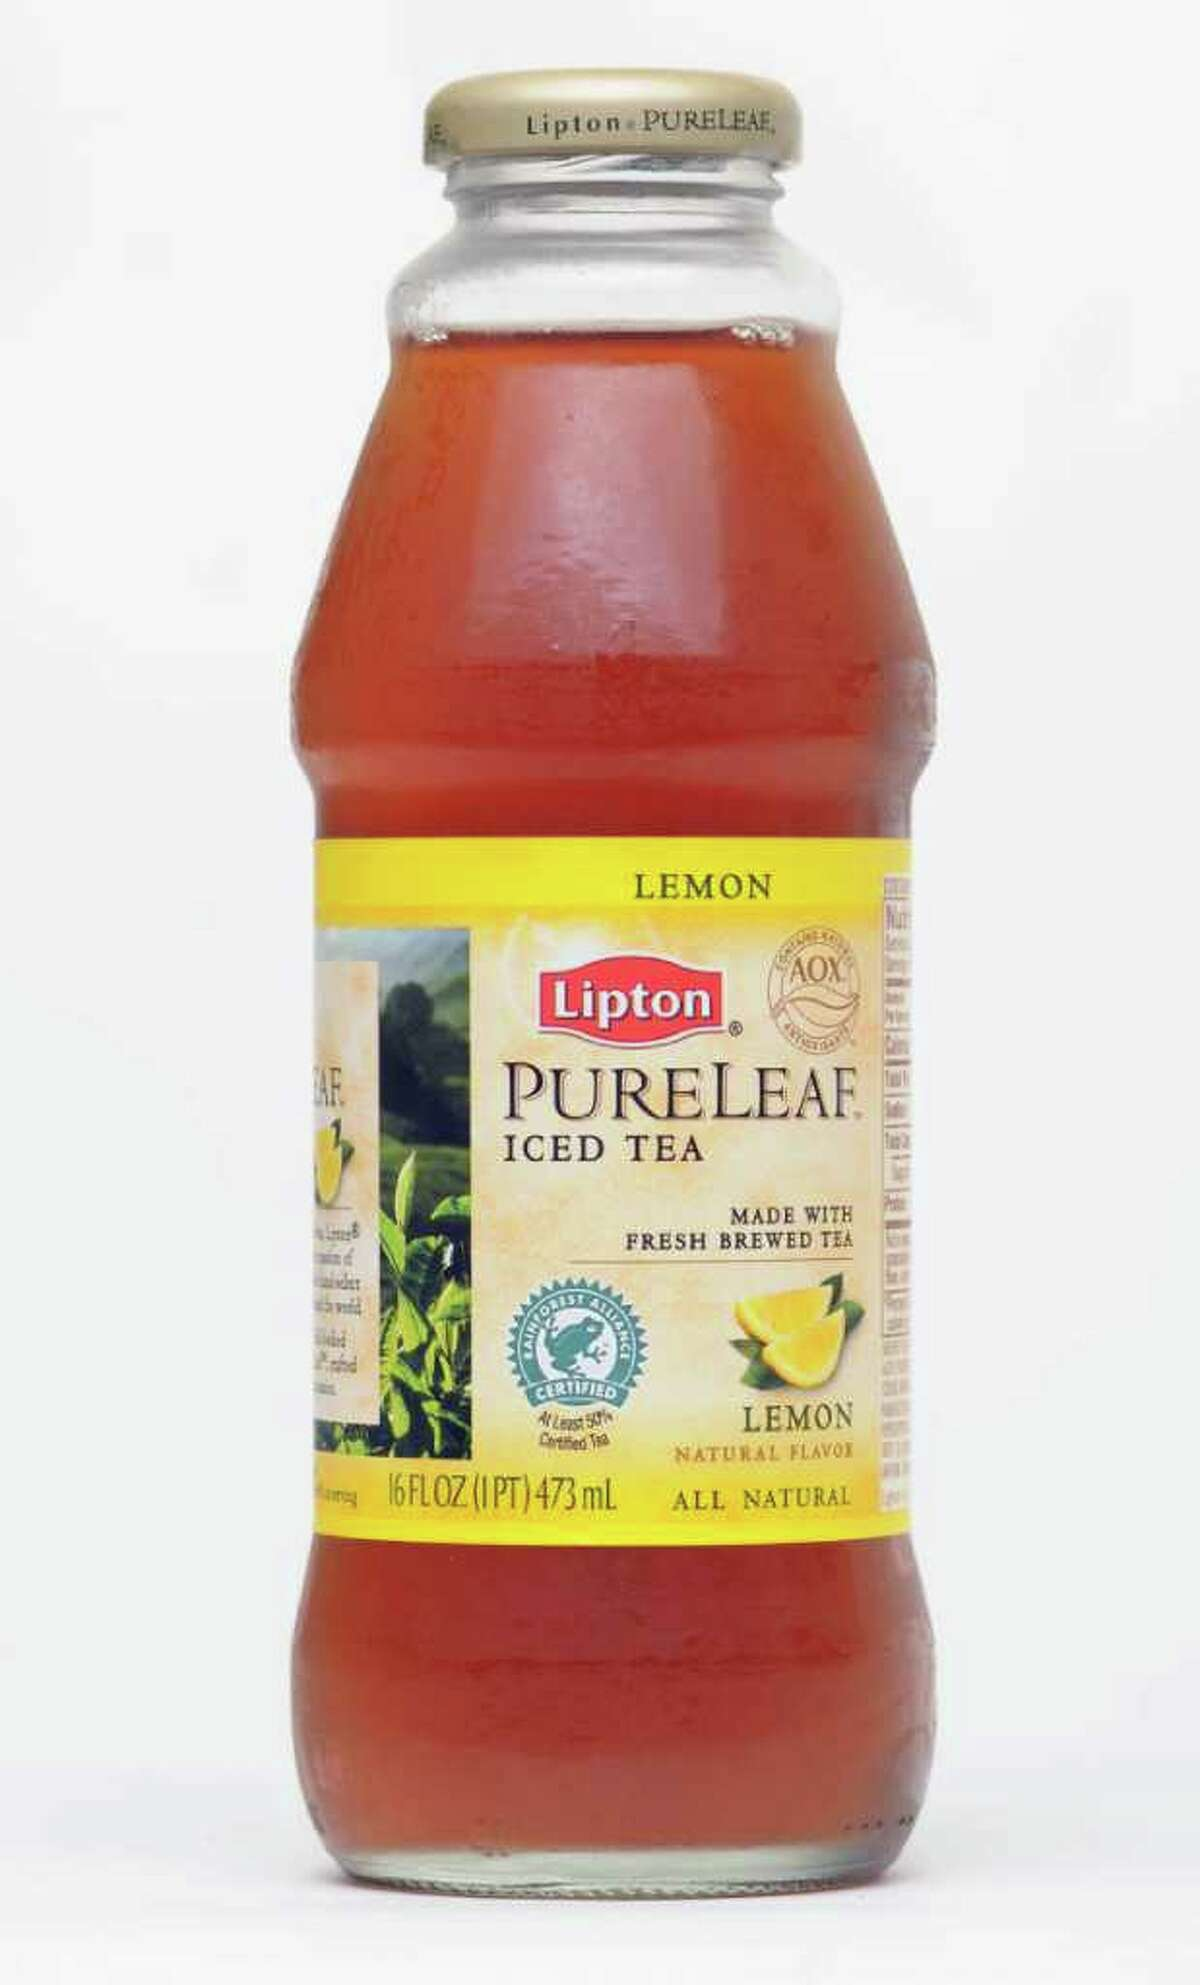 Lipton Iced tea: $2.96 Equivalent to more than 1.5 gallons of gas in Texas Based on the price of 1 gallon of Lipton Iced Tea at H-E-B.